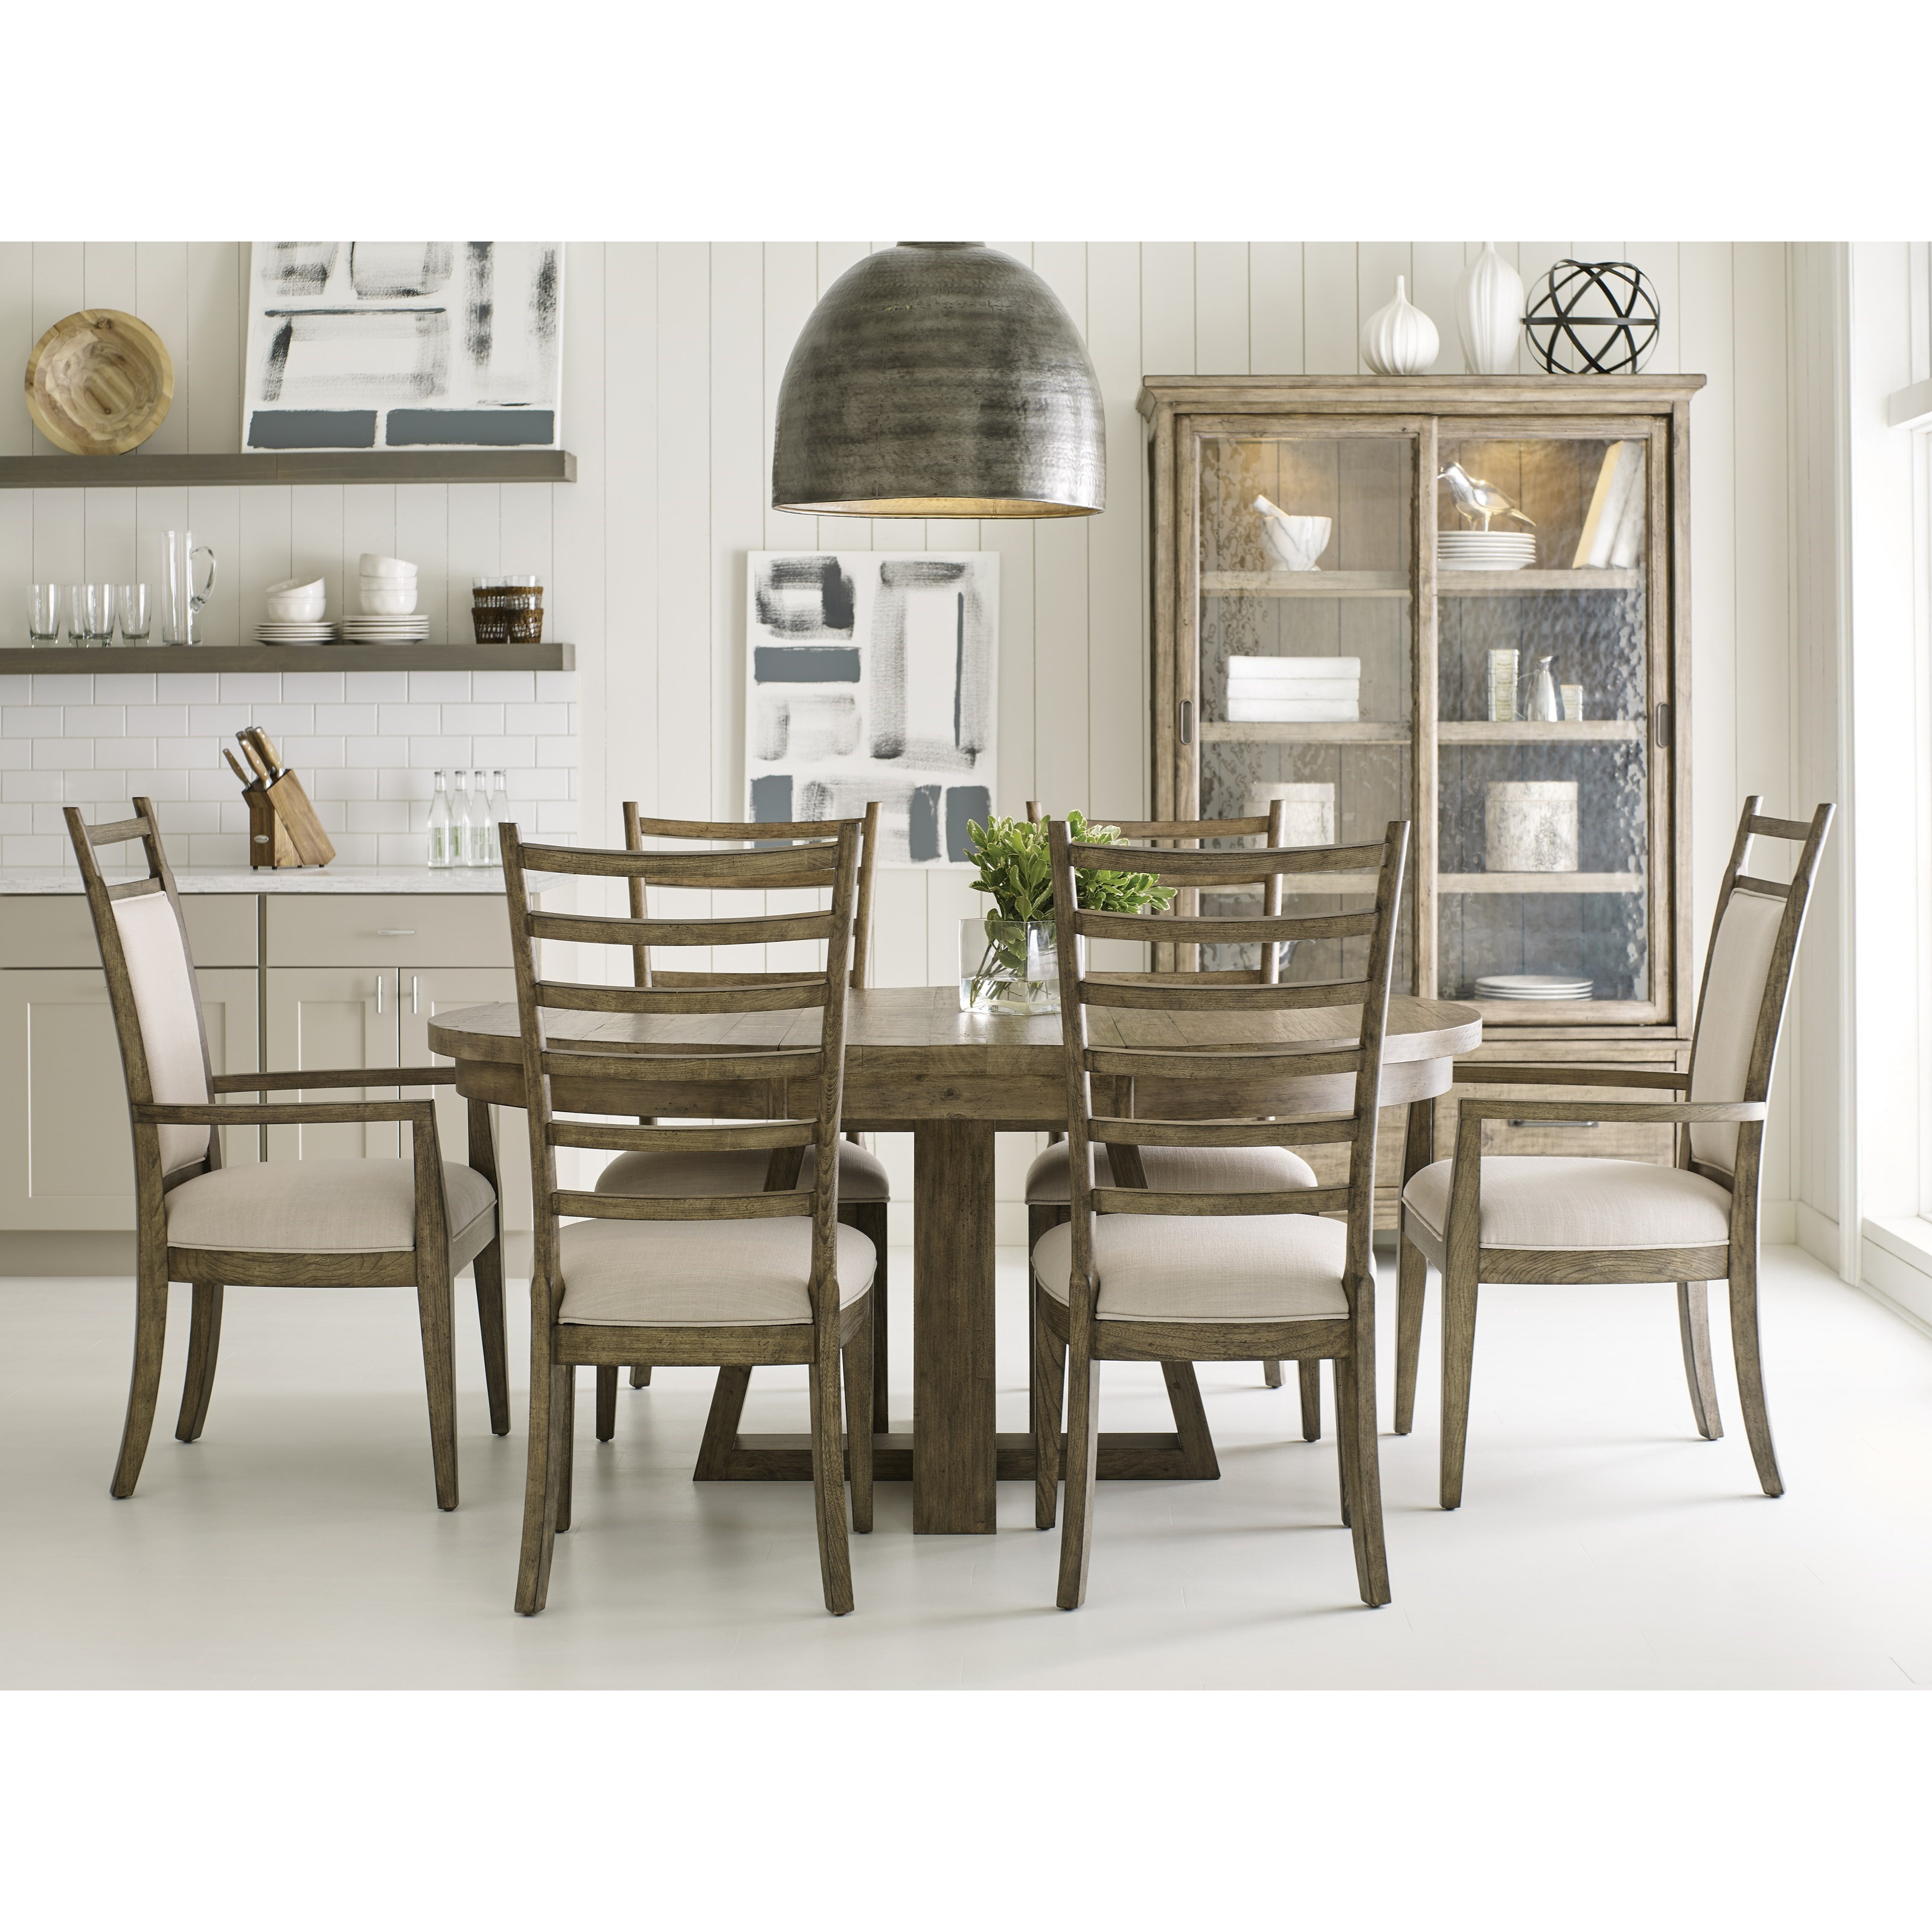 Plank Road Formal Dining Room Group by Kincaid Furniture at Johnny Janosik